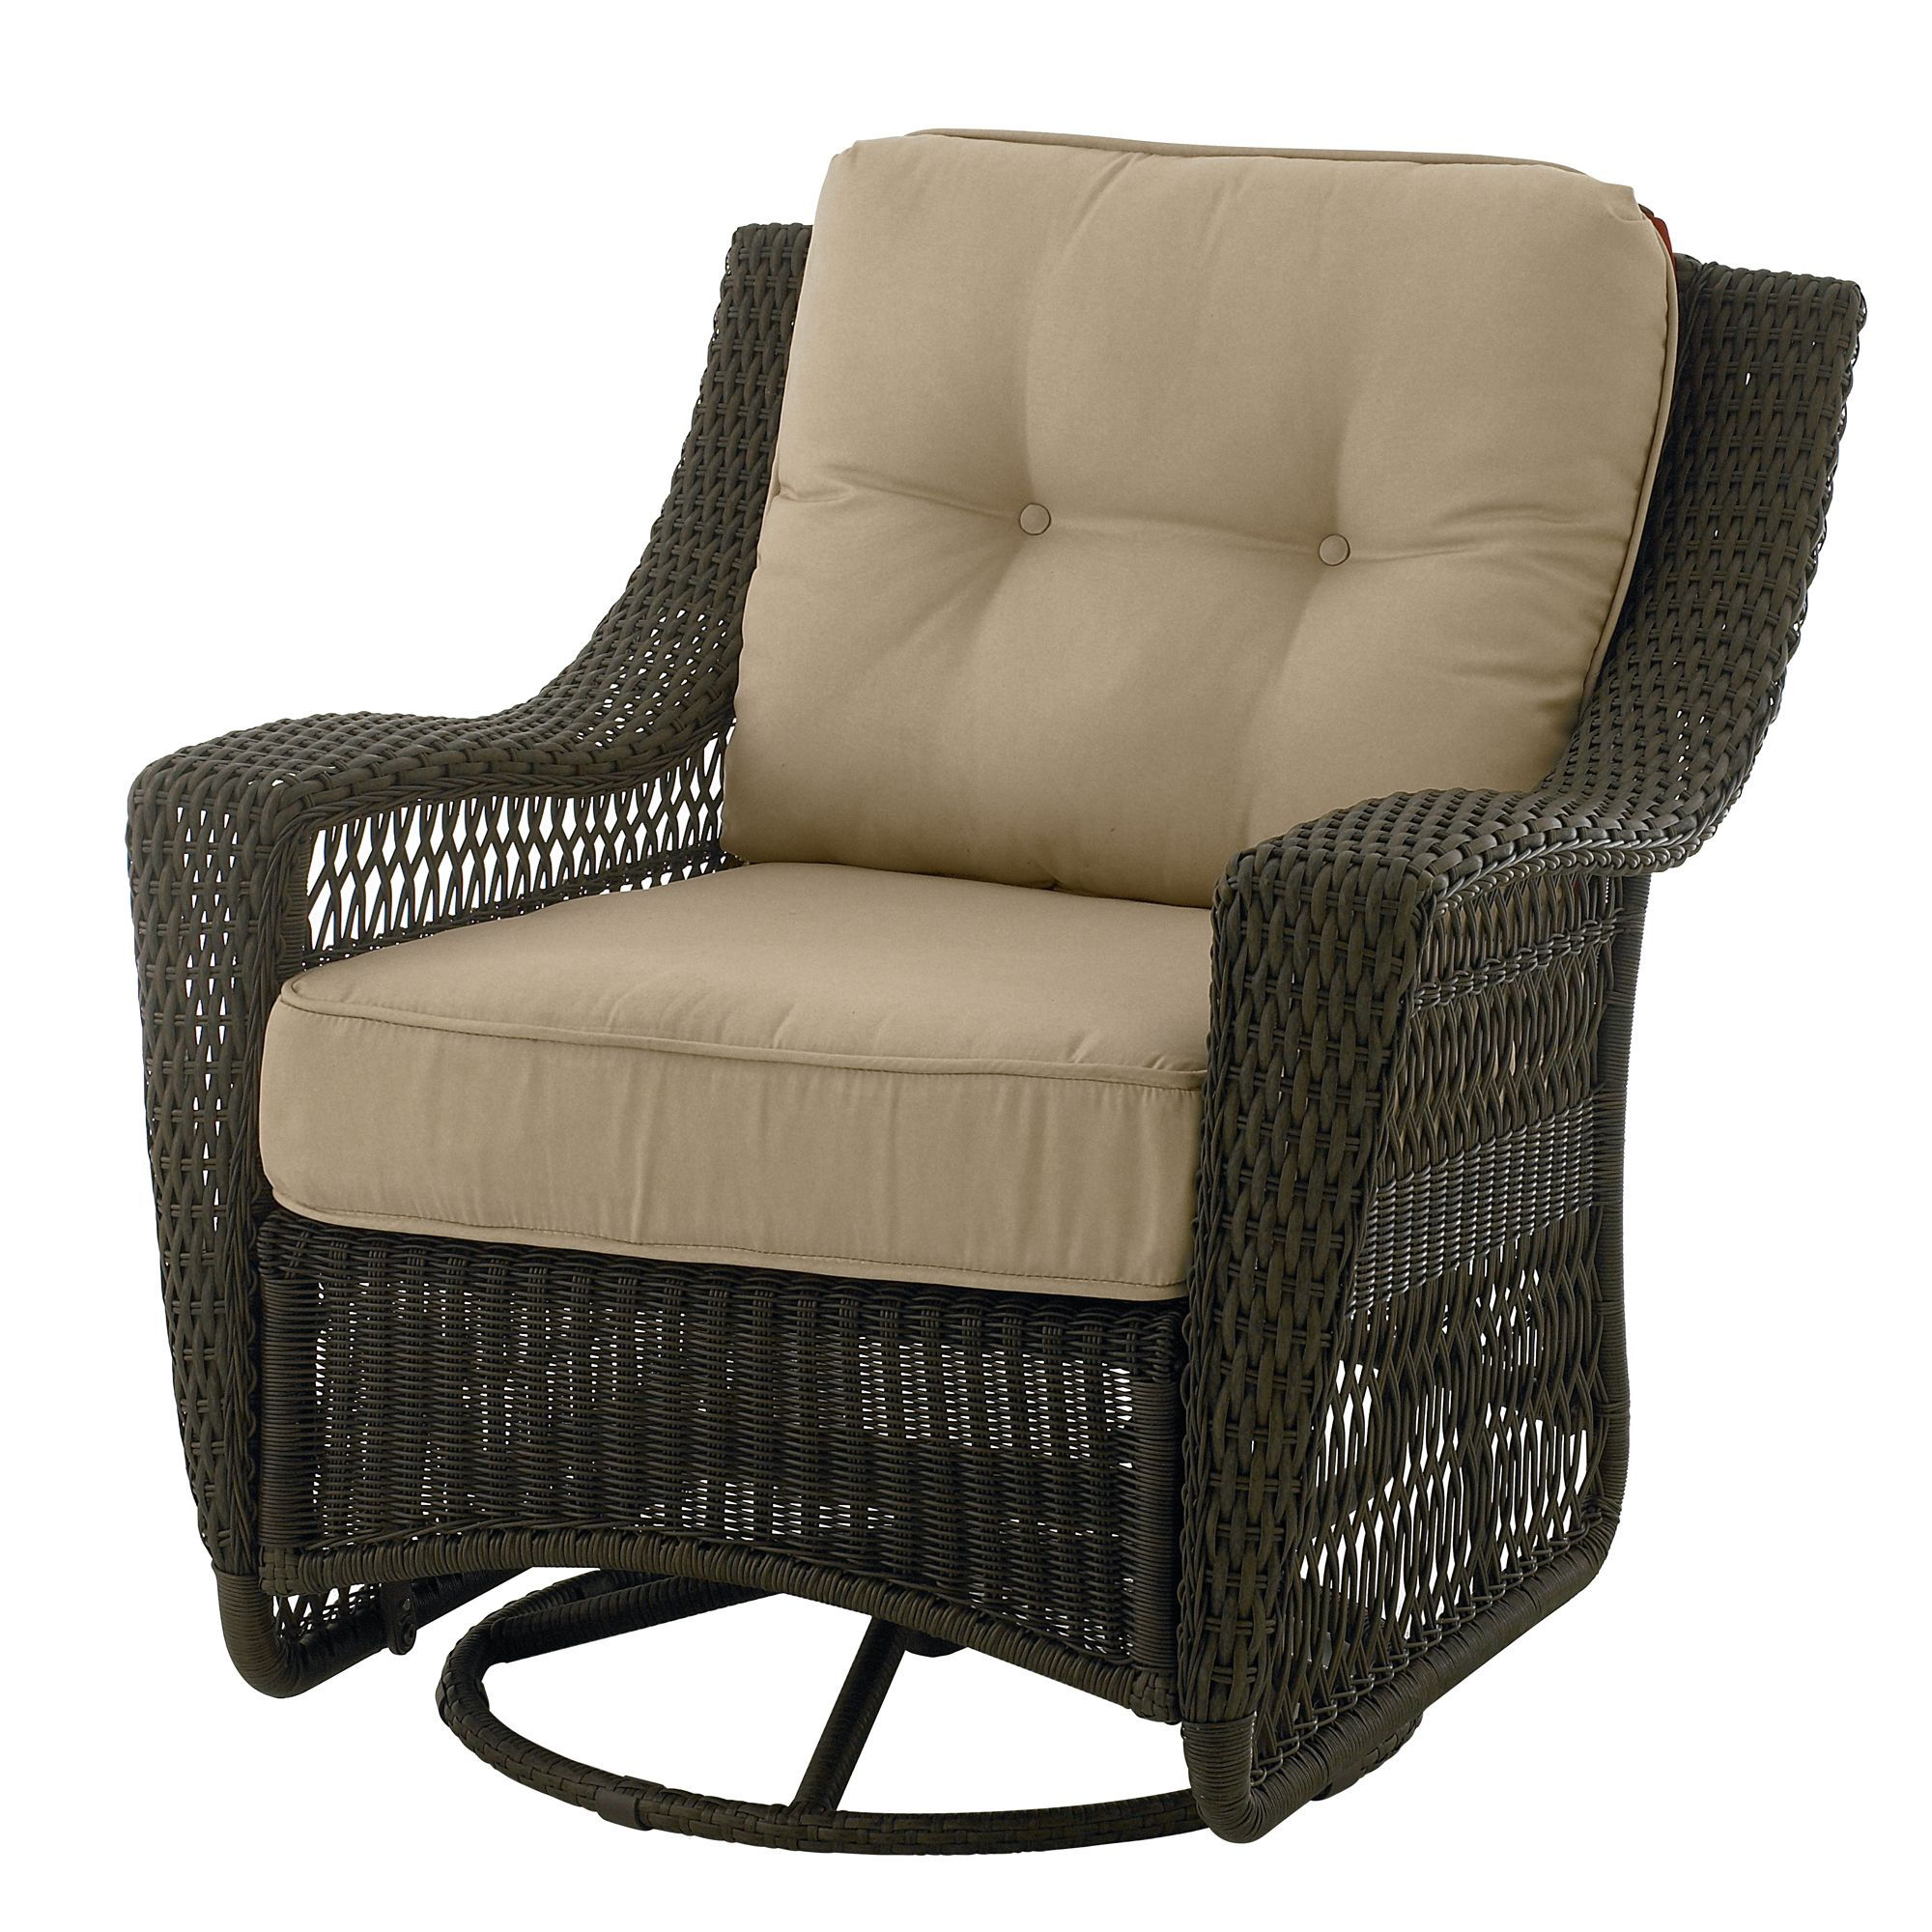 Spending time on your patio or in your garden is a great way to relax. Many people enjoy hosting parties and get-togethers in their backyards. Kmart carries a great selection of outdoor living furniture and patio sets. Host your next BBQ in style. Have a relaxing breakfast outside on a pleasant morning.